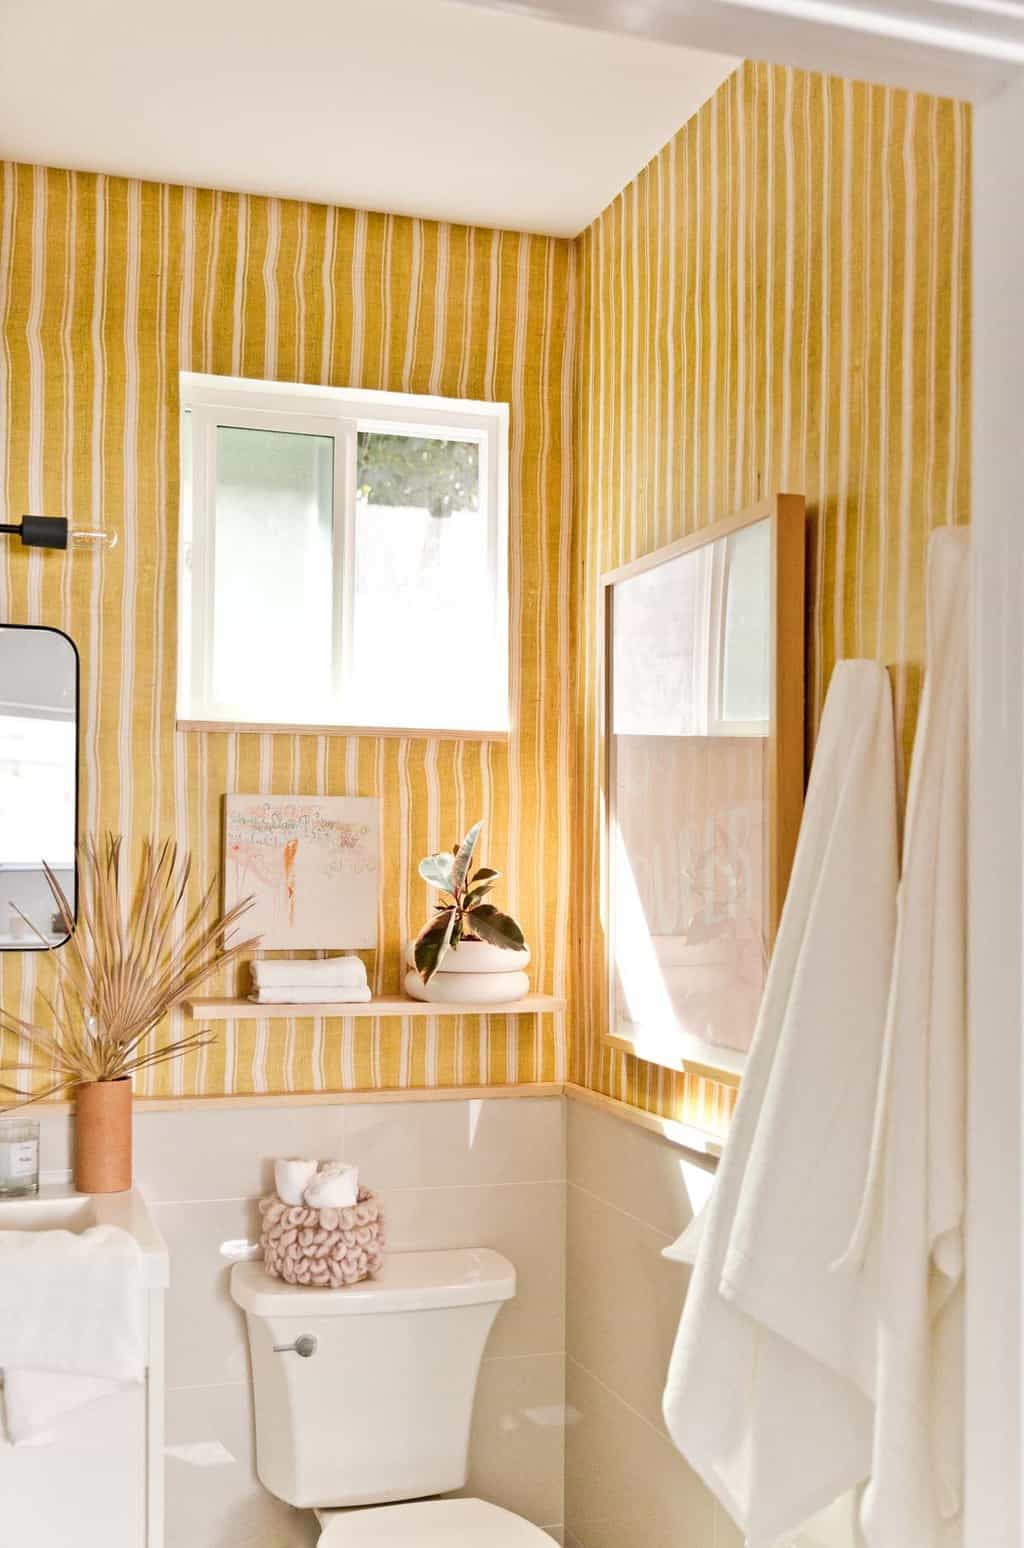 Image of a modern, yellow bathroom with striped wallpaper.